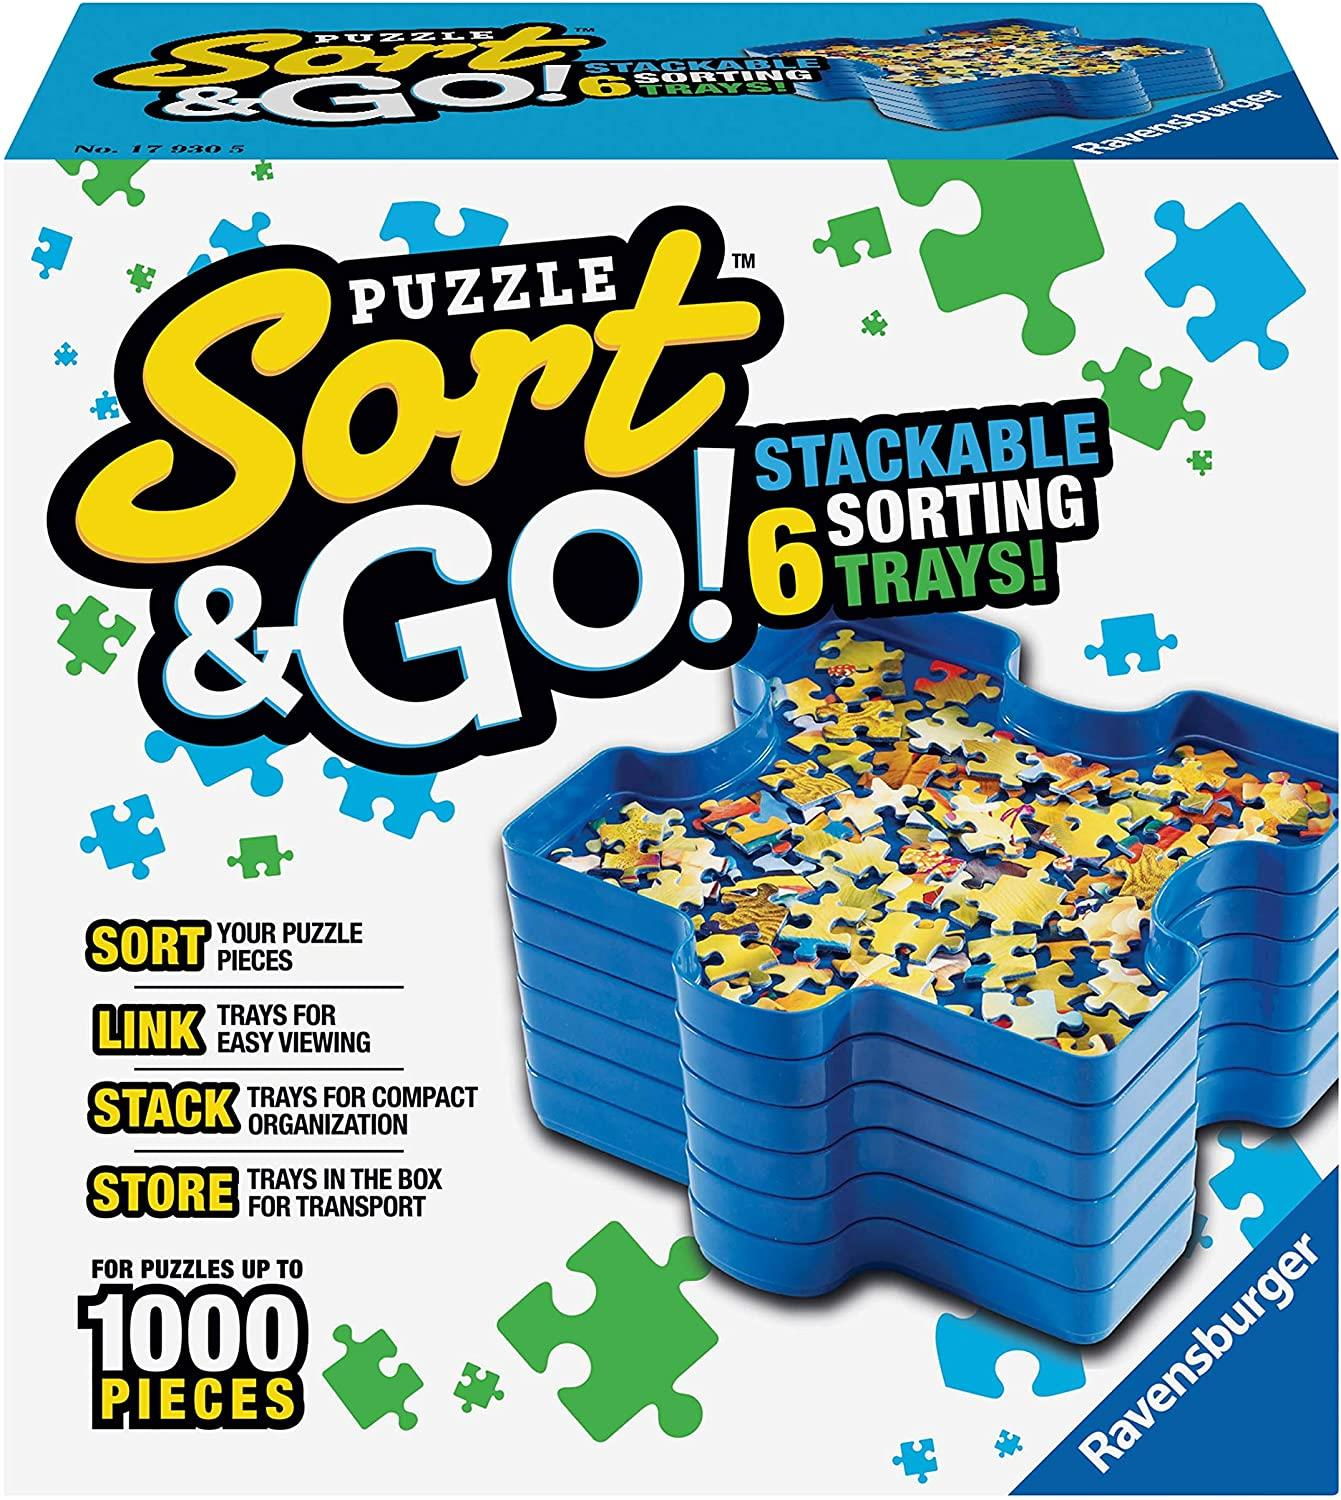 Ravensburger Sort & Go! Stackable Puzzle Sorting Trays